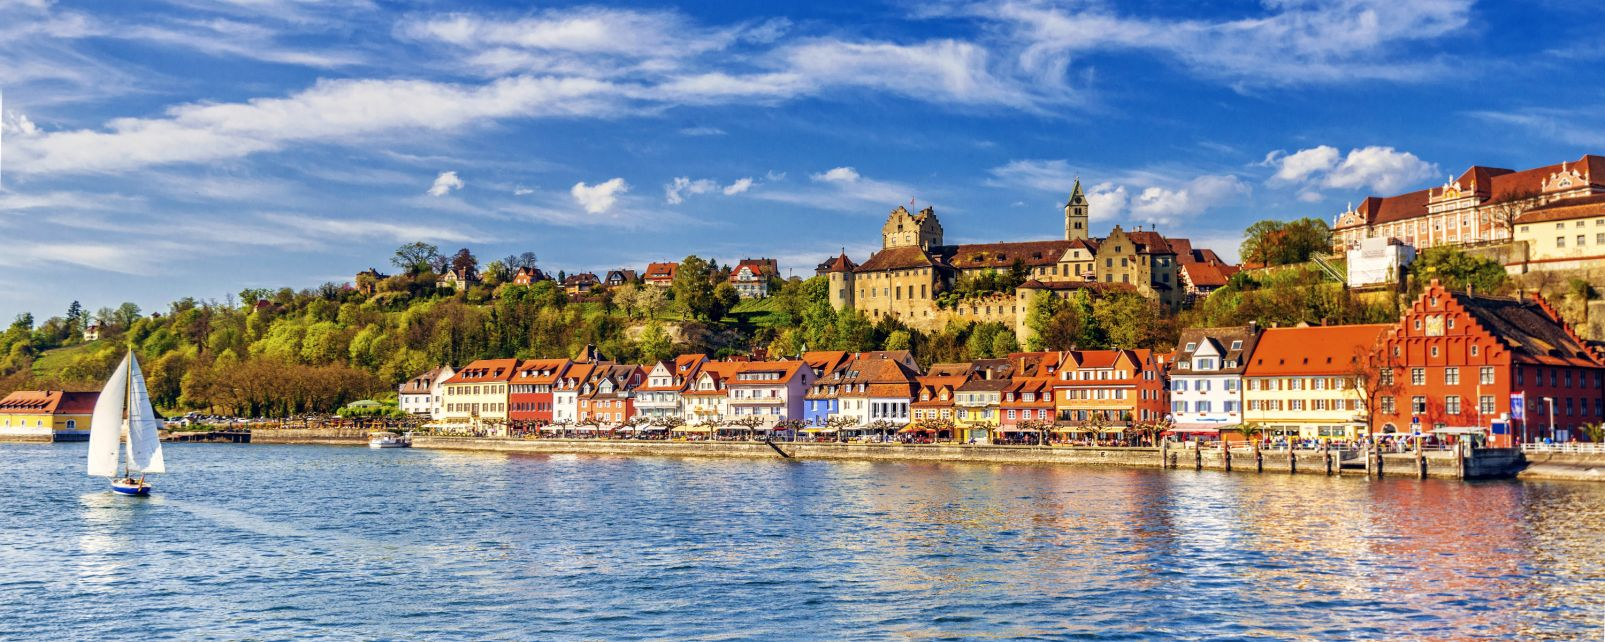 Constance Germany  city photos : Lake Constance Germany